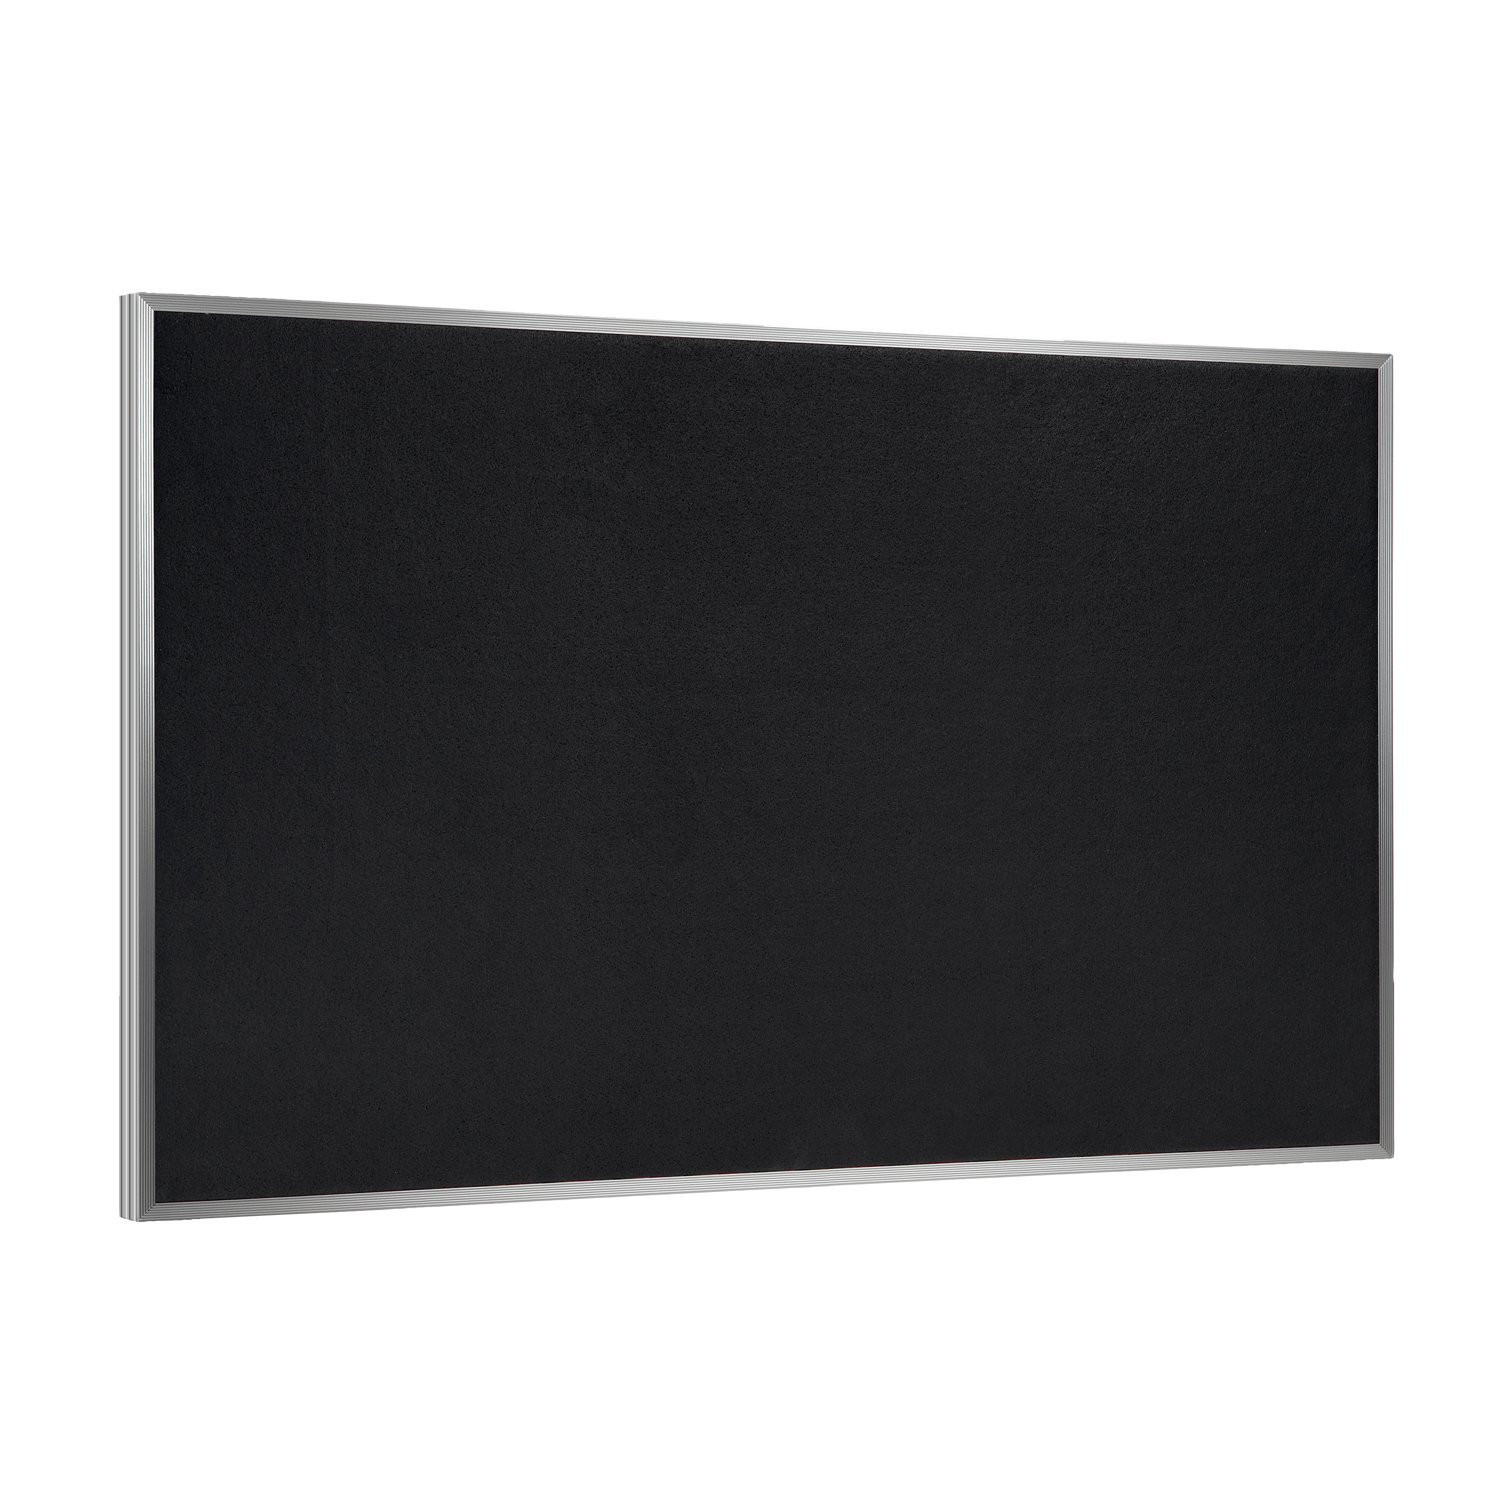 48.5'' x 144.5'' Recycled Rubber Bulletin Board, Solid Black Rubber, Aluminum Frame